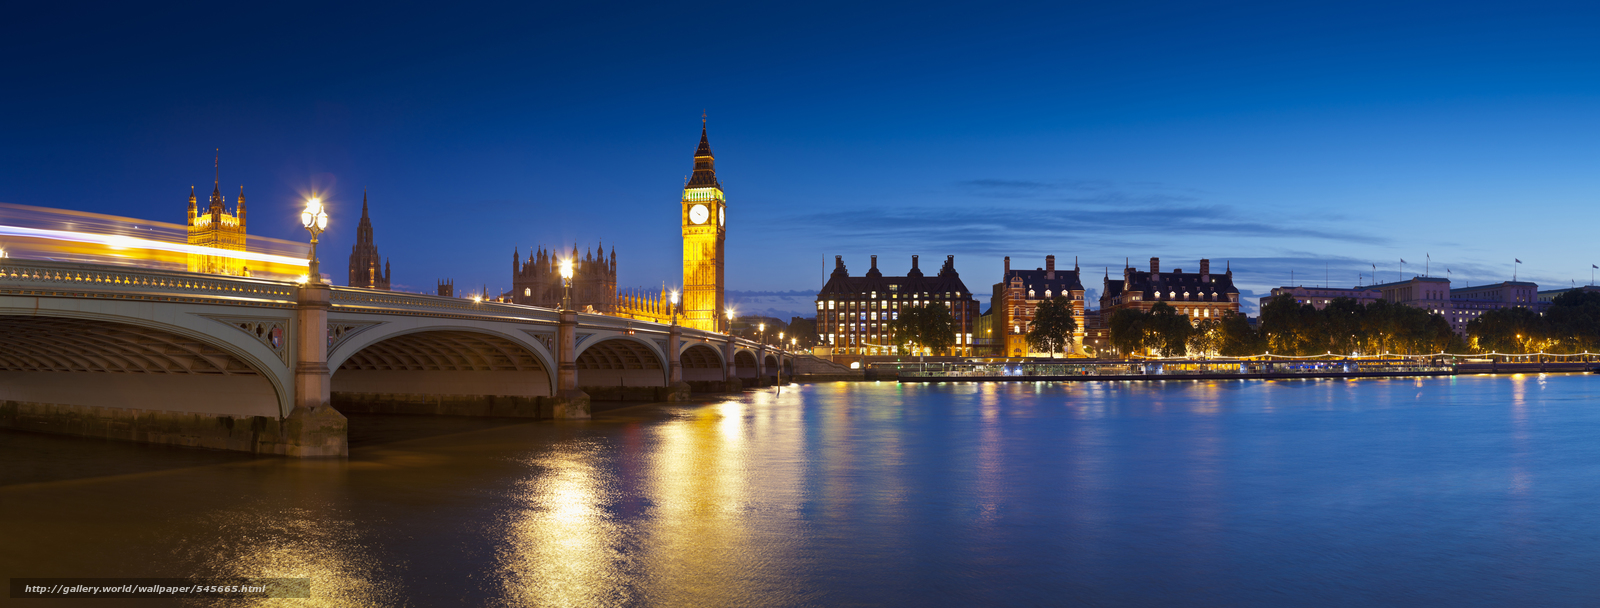 545665_london_bridge_britain_river_thames_lights_night_be_7000x2659_www.Gde-Fon.com